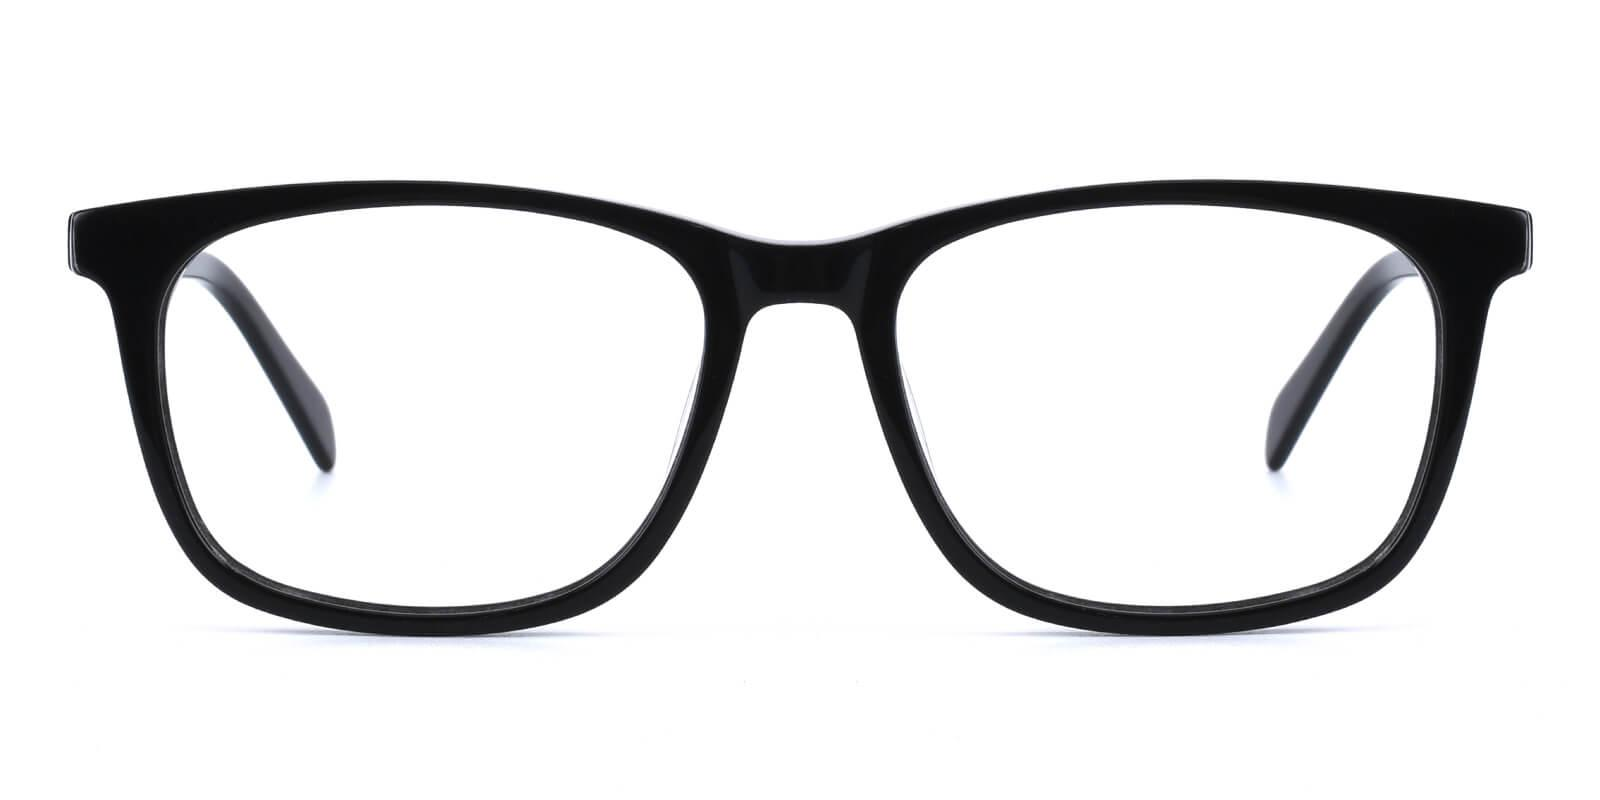 Bugger-Black-Square-Acetate-Eyeglasses-additional2